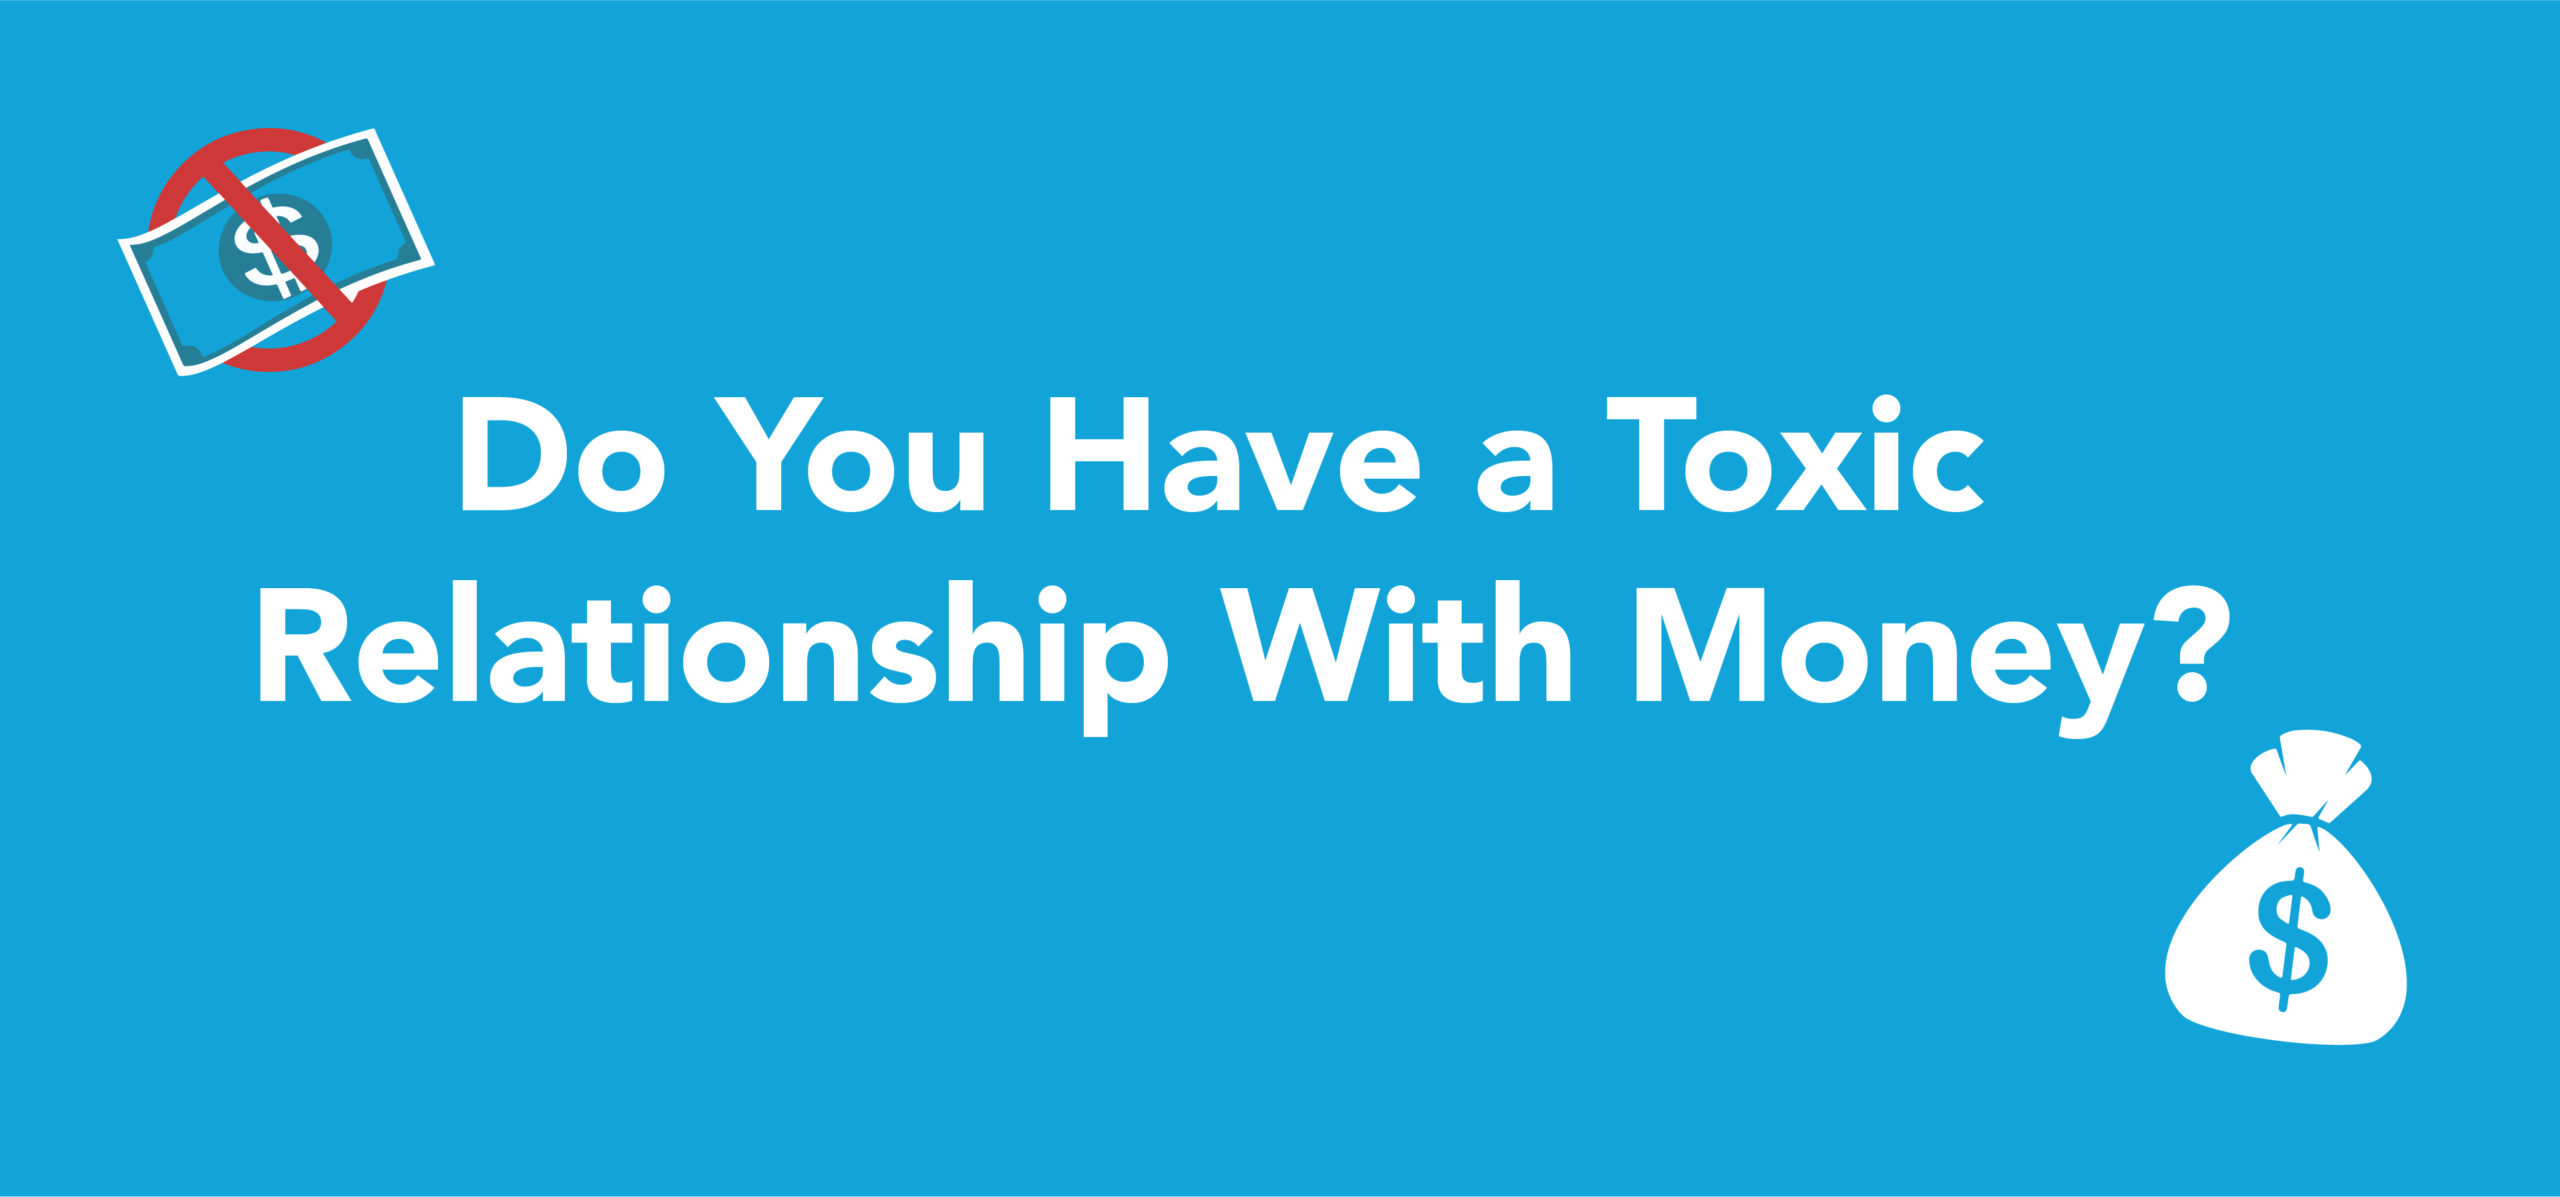 Do you have a toxic relationship with money